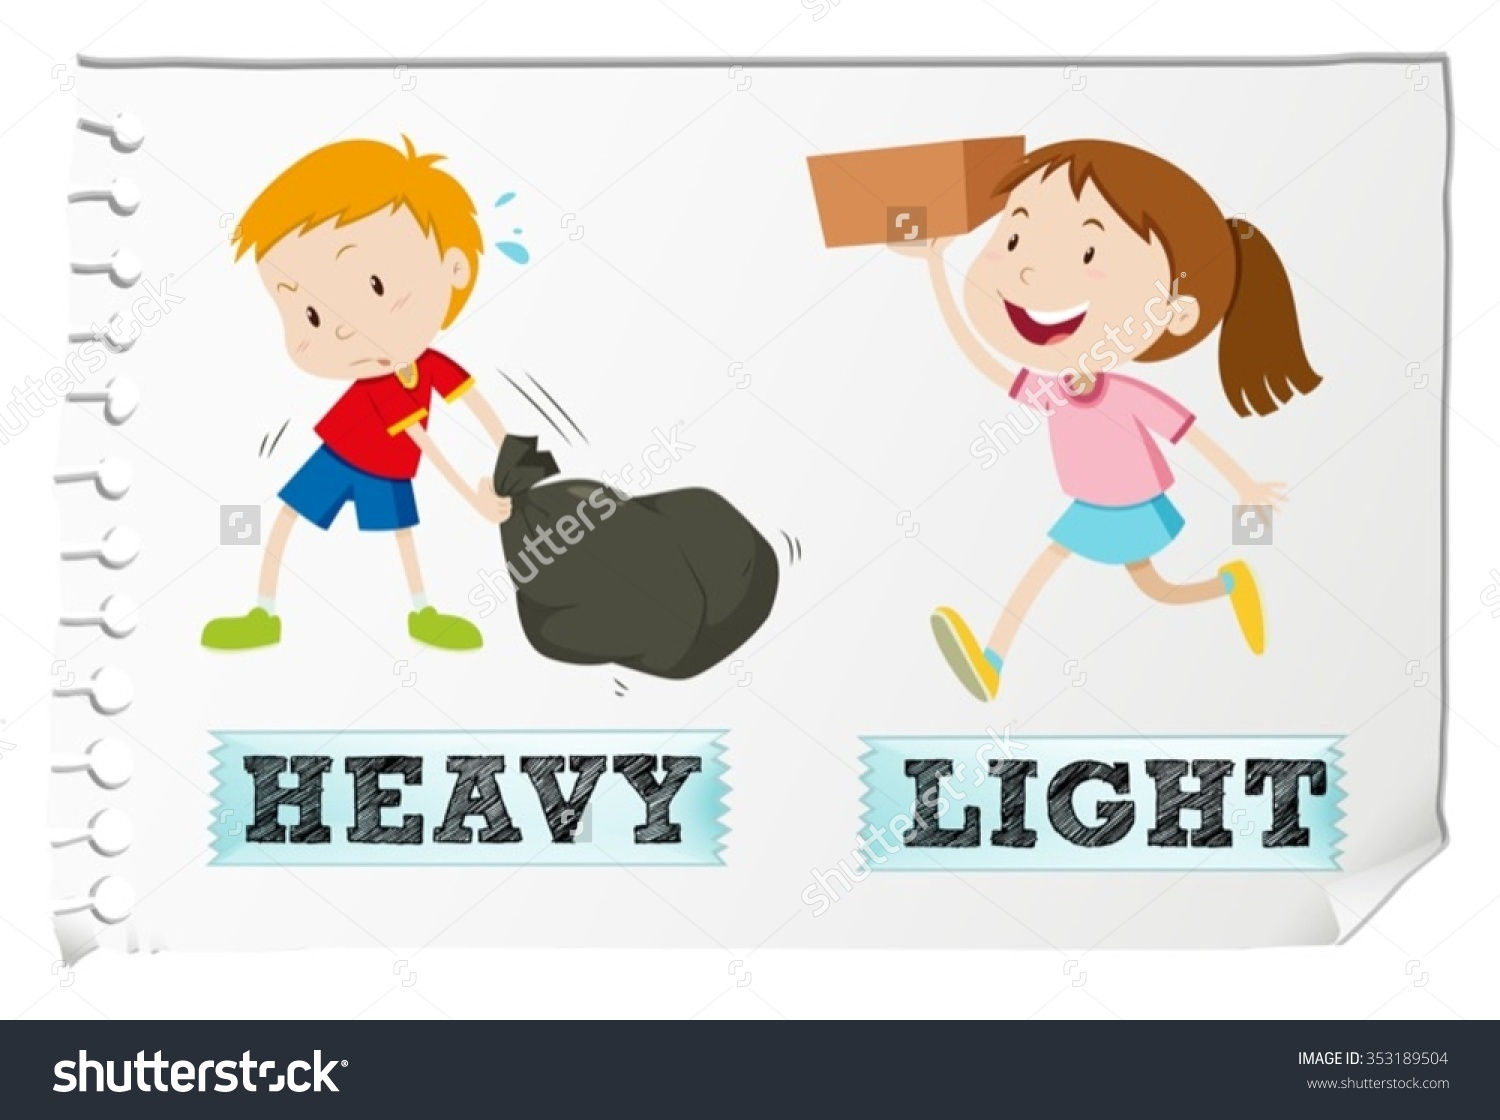 Heavy and light objects clipart.